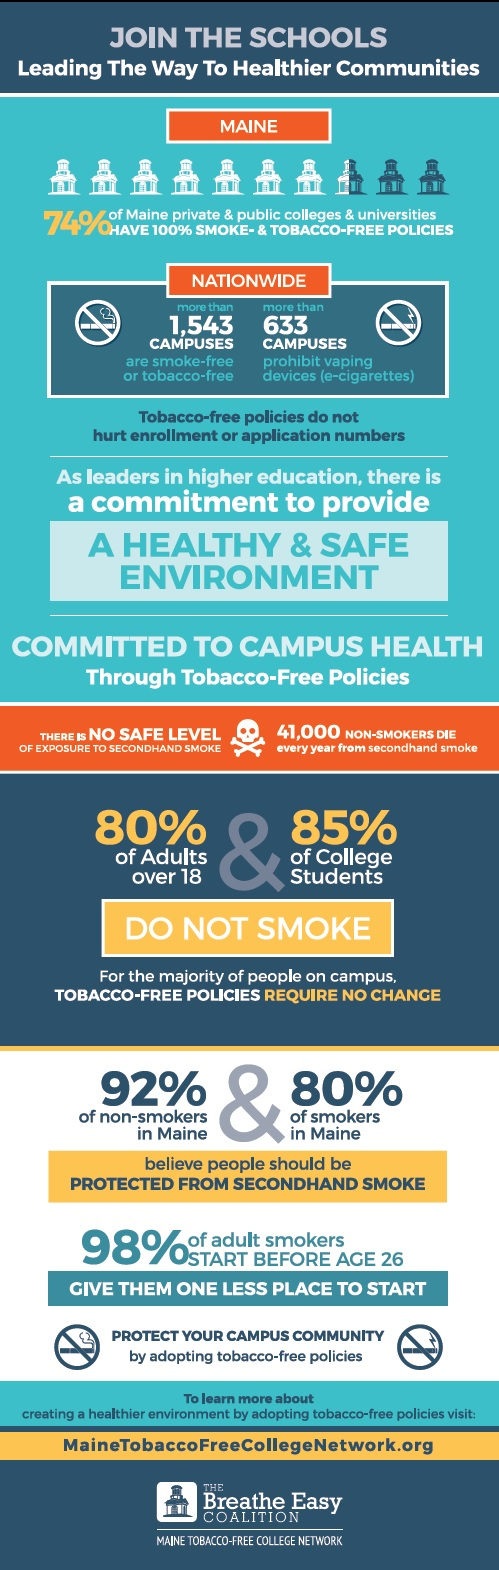 info2 - Learning 101: On-Site Campus Activities to Promote Smoke-Free Environments